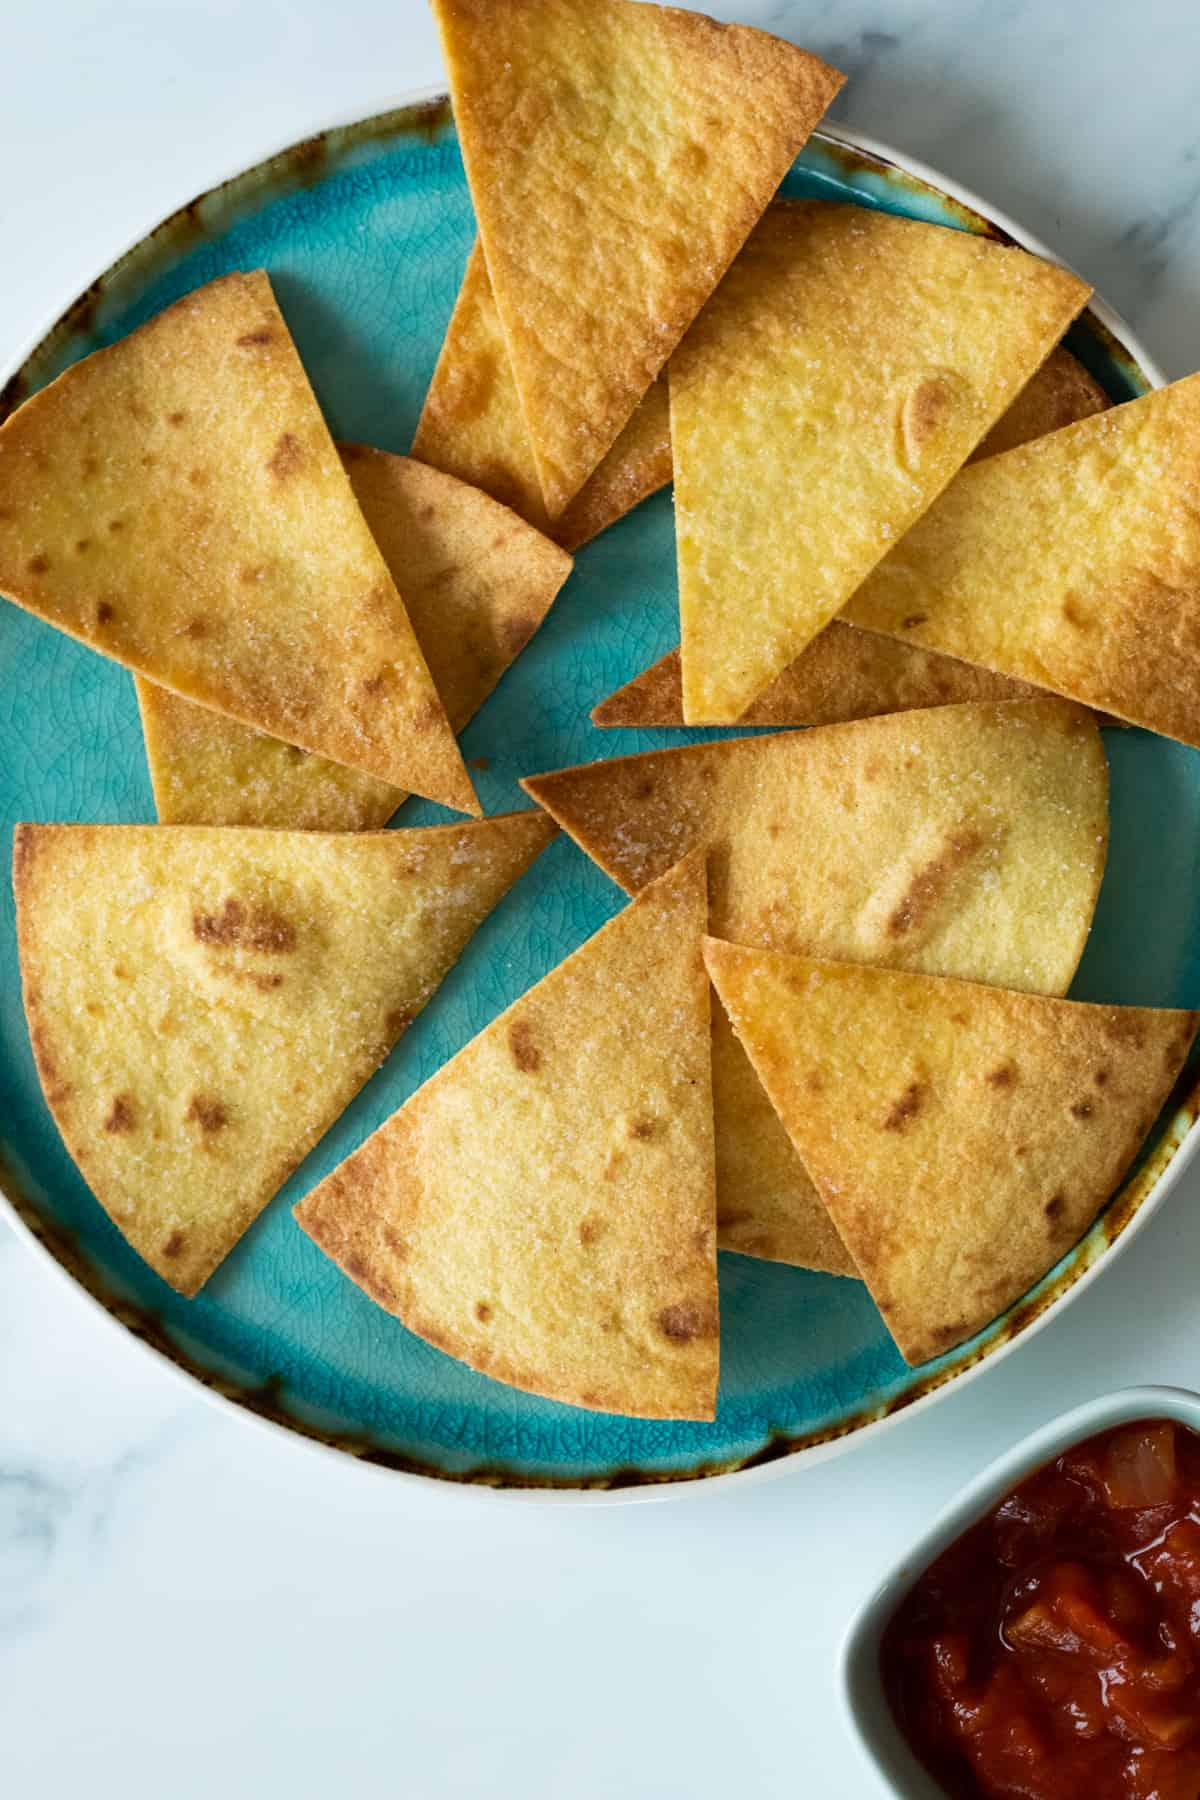 homemade tortilla chips on a blue plate